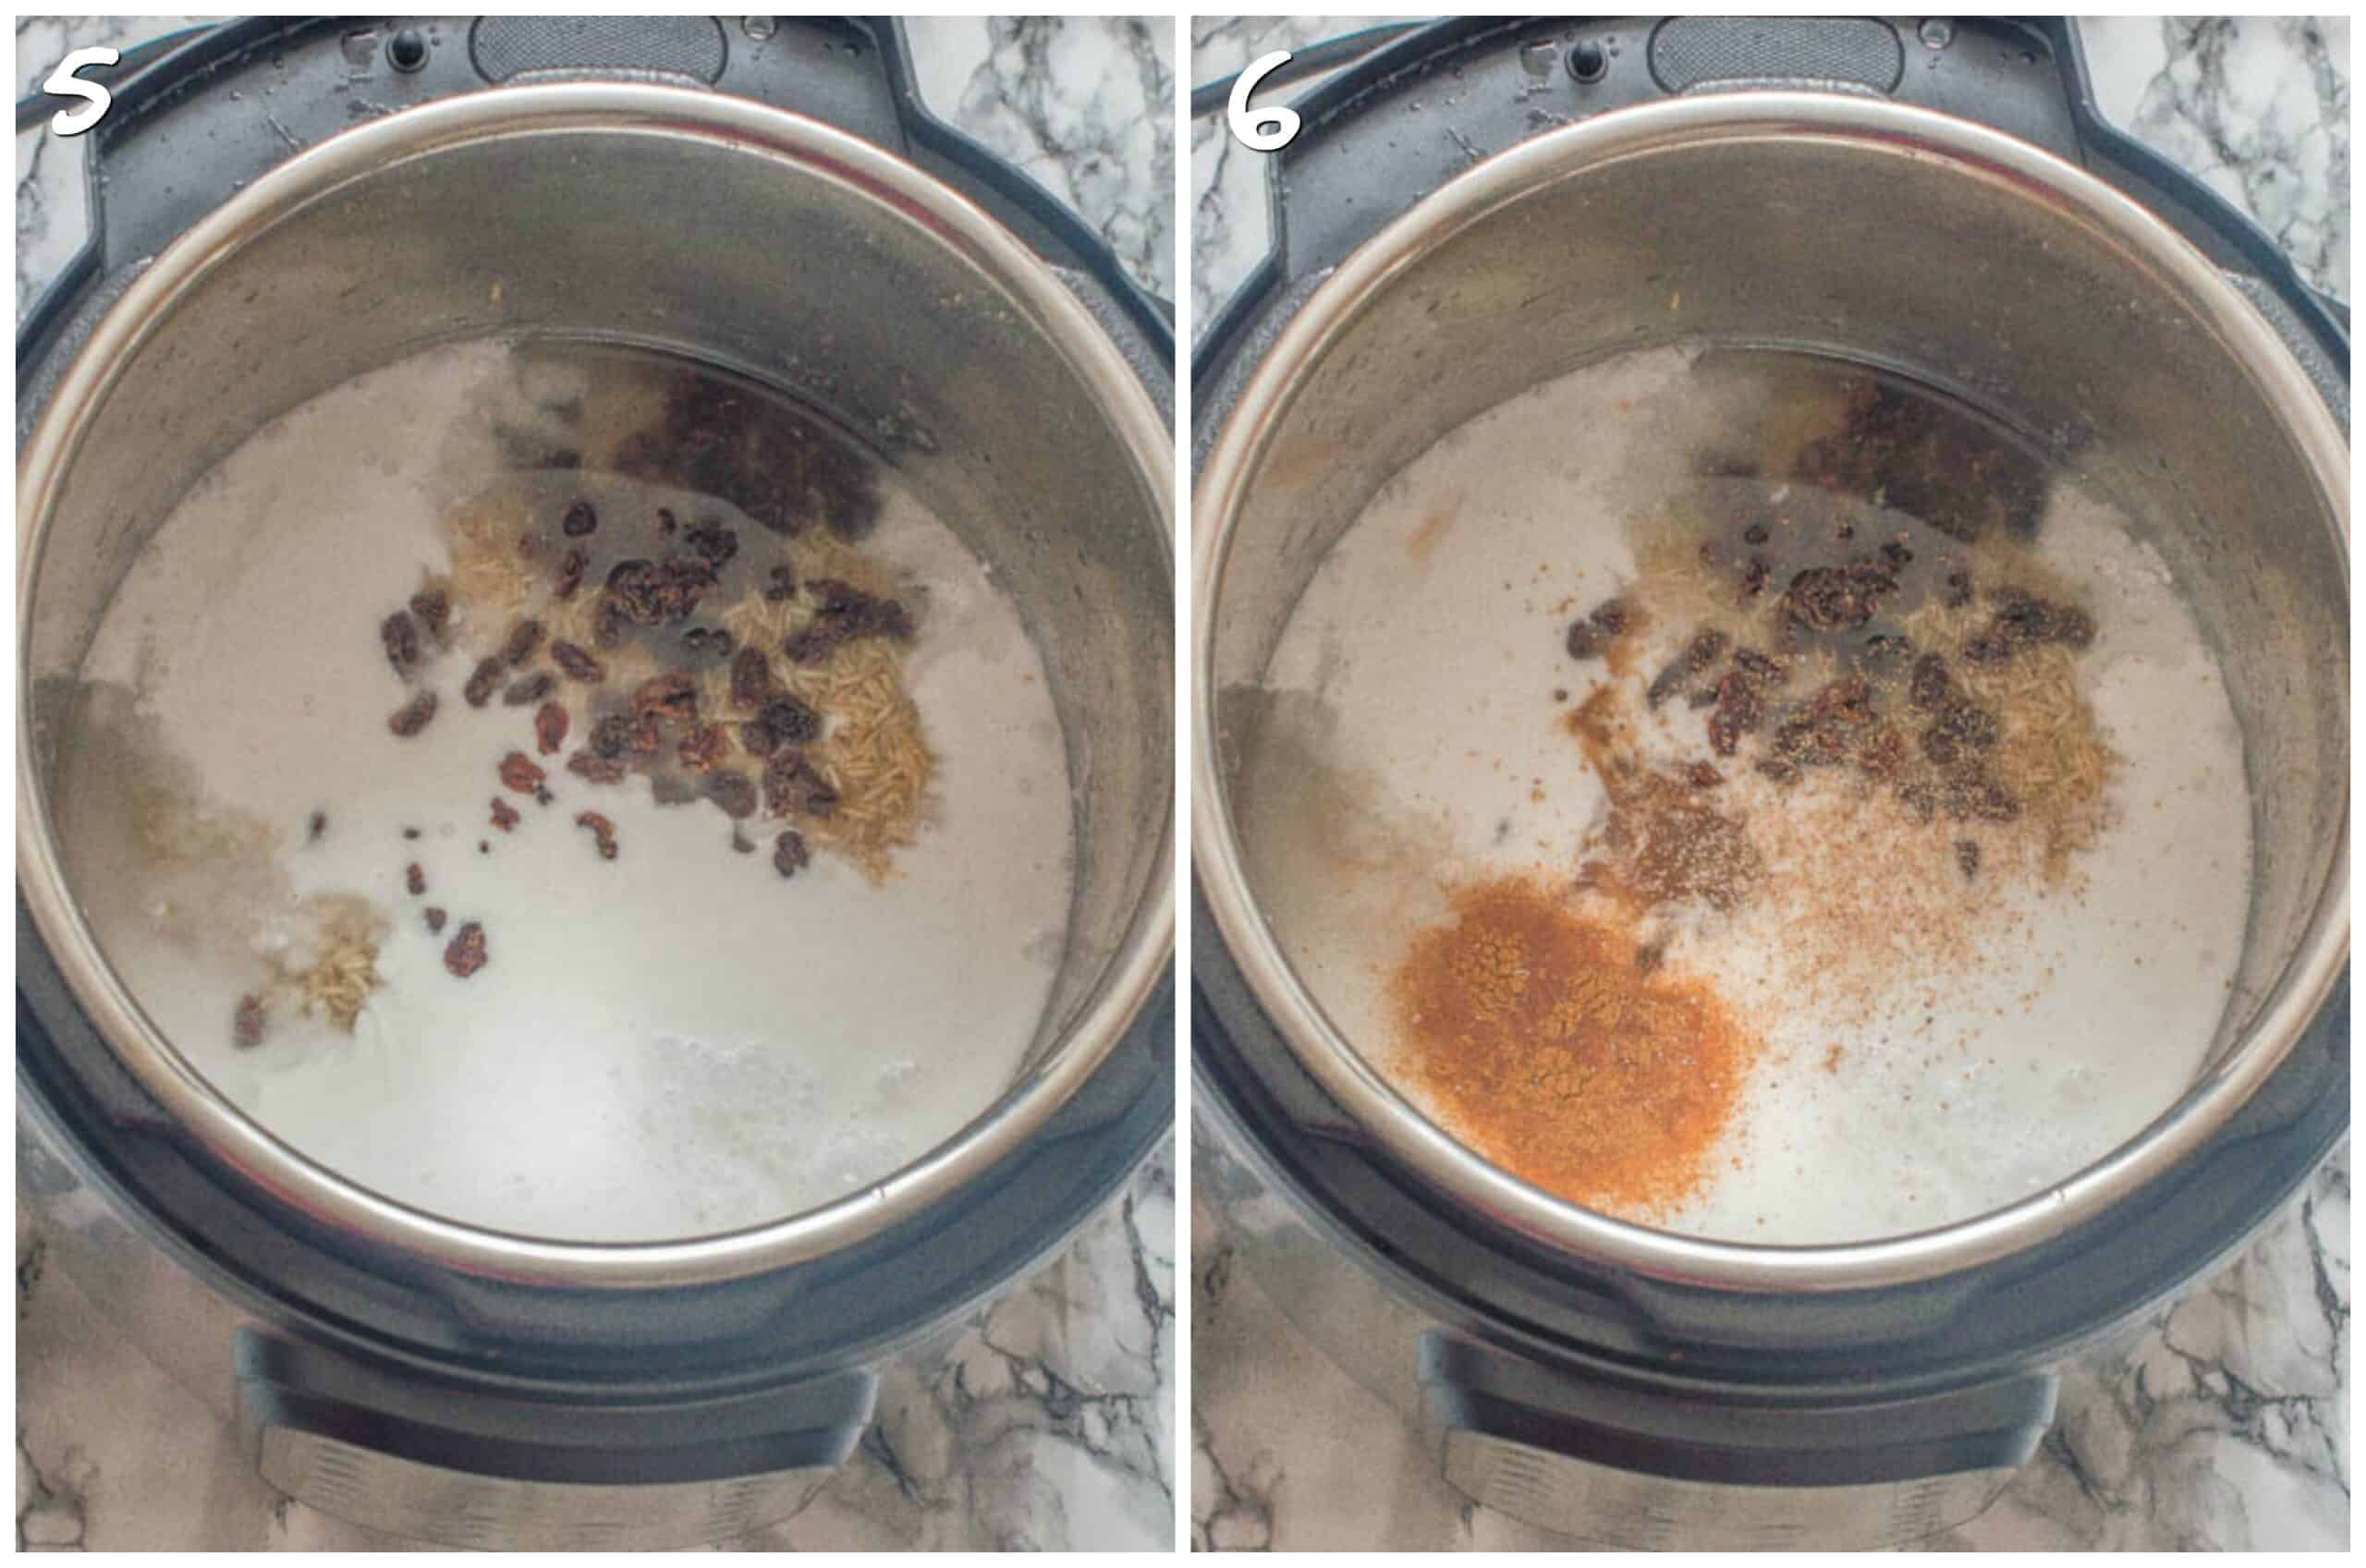 steps 5-6 adding raisins and spices to instant pot